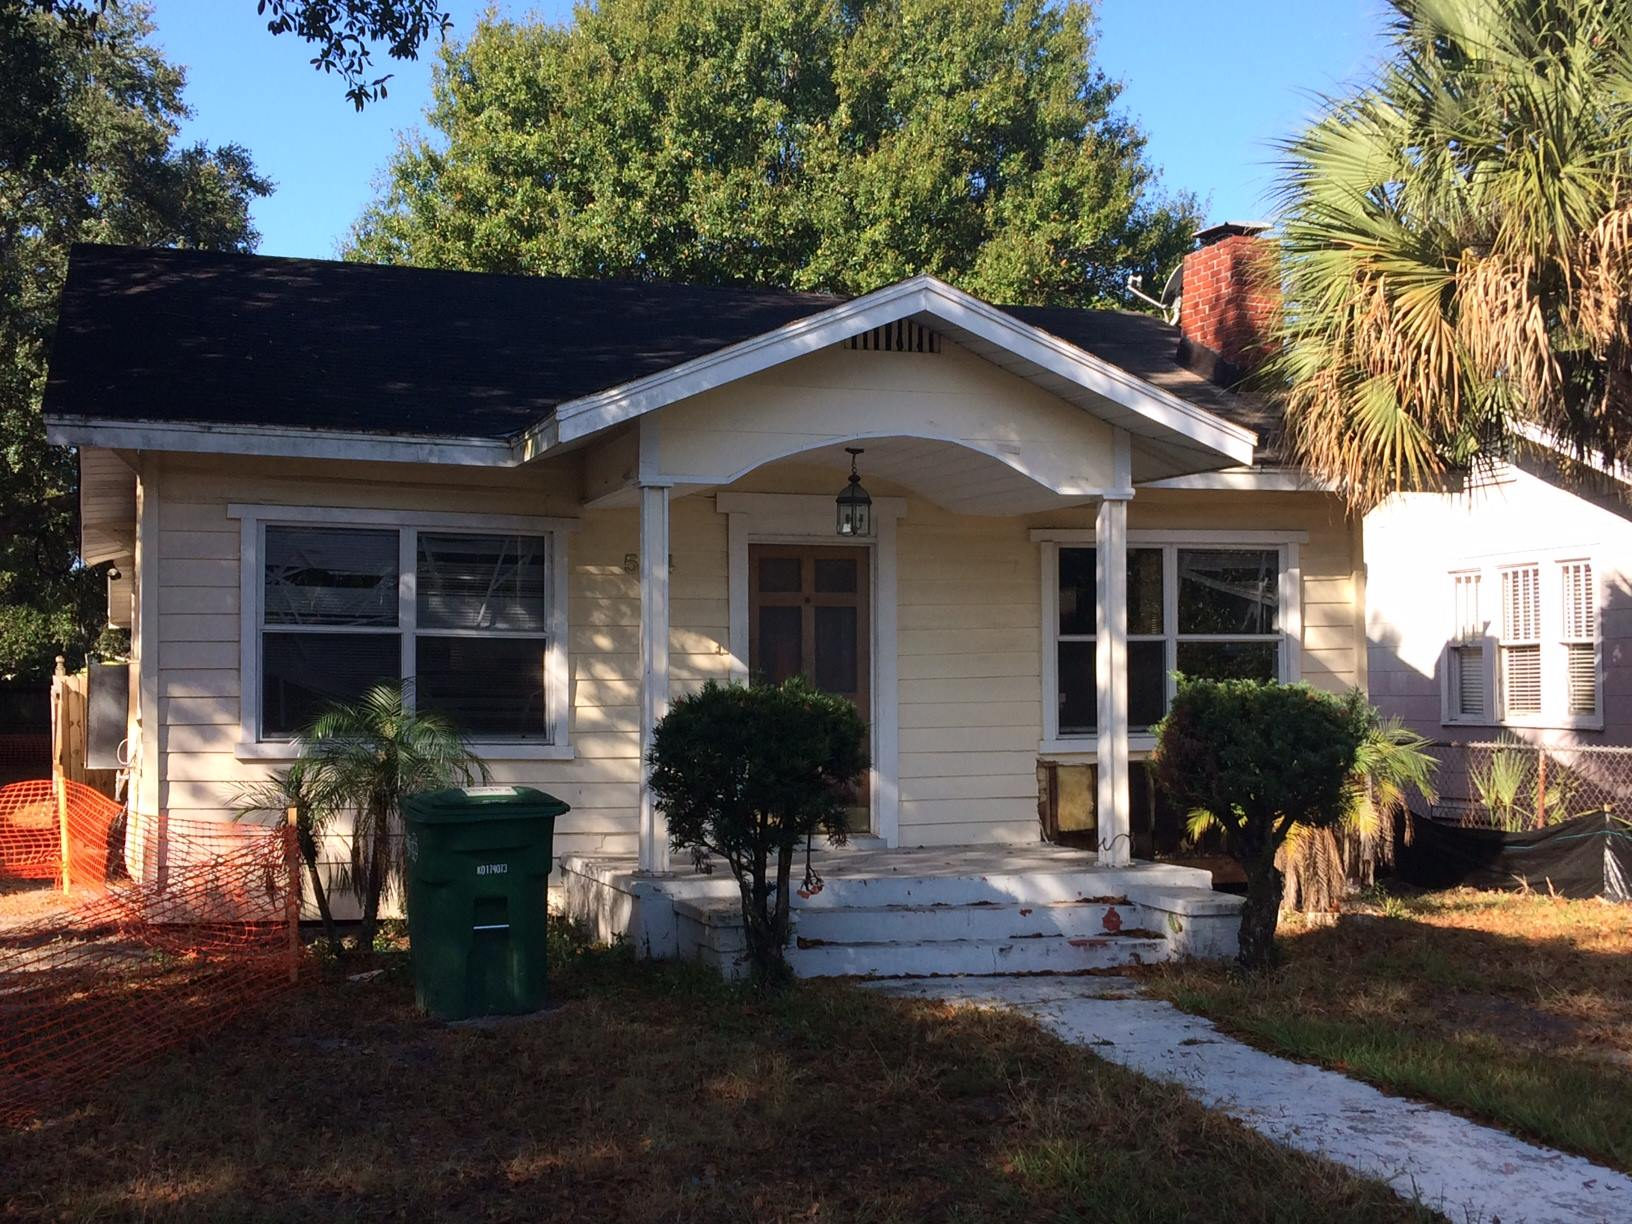 How much are lots selling for in North Hyde Park & West Tampa?